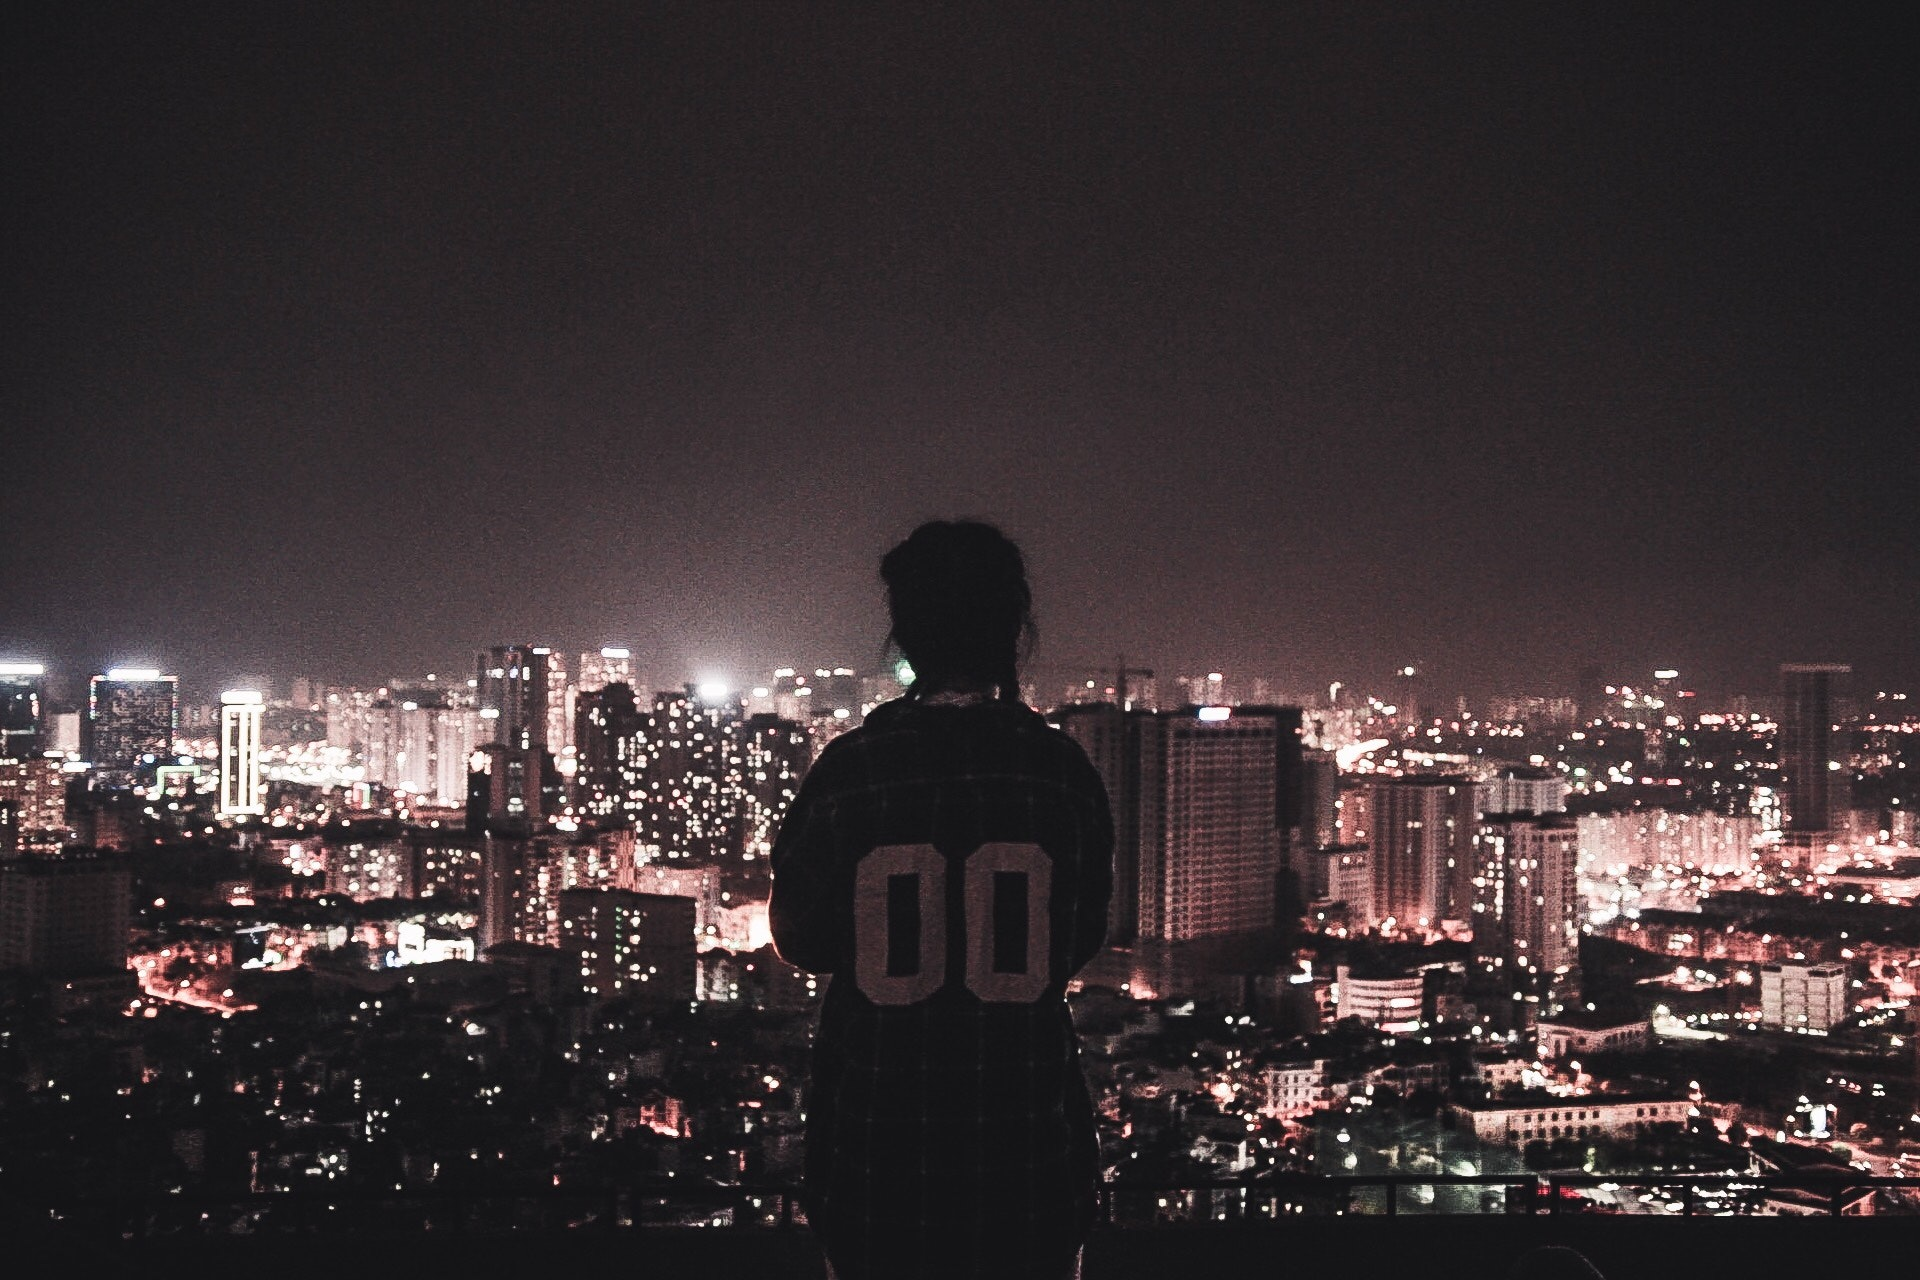 Photo of a Person Watching over City Lights during Night Time, Architecture, Outdoors, Urban, Travel, HQ Photo